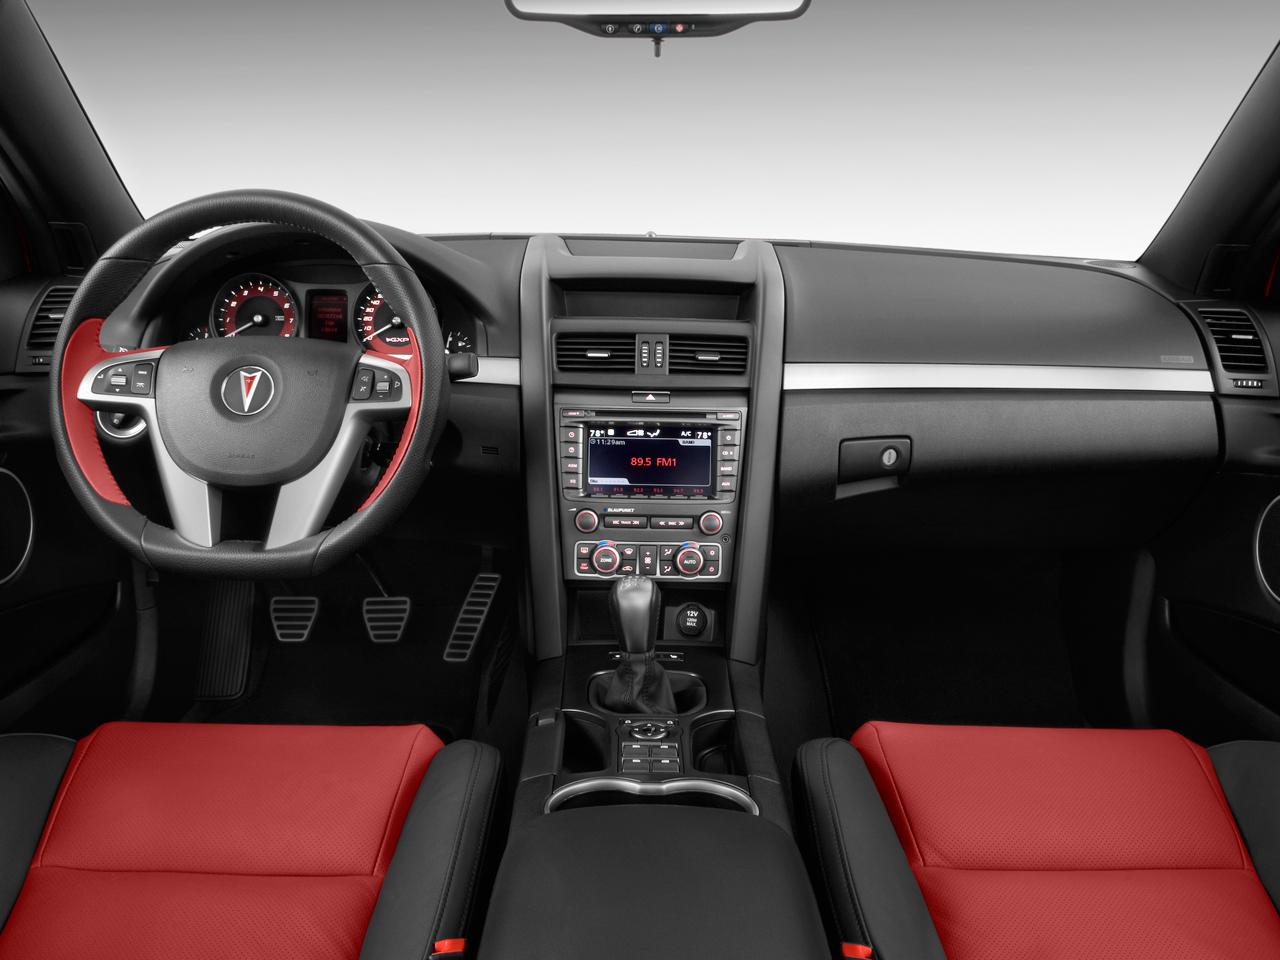 Worksheet. 2009 Pontiac G8 GXP  Latest News Reviews and Auto Show Coverage